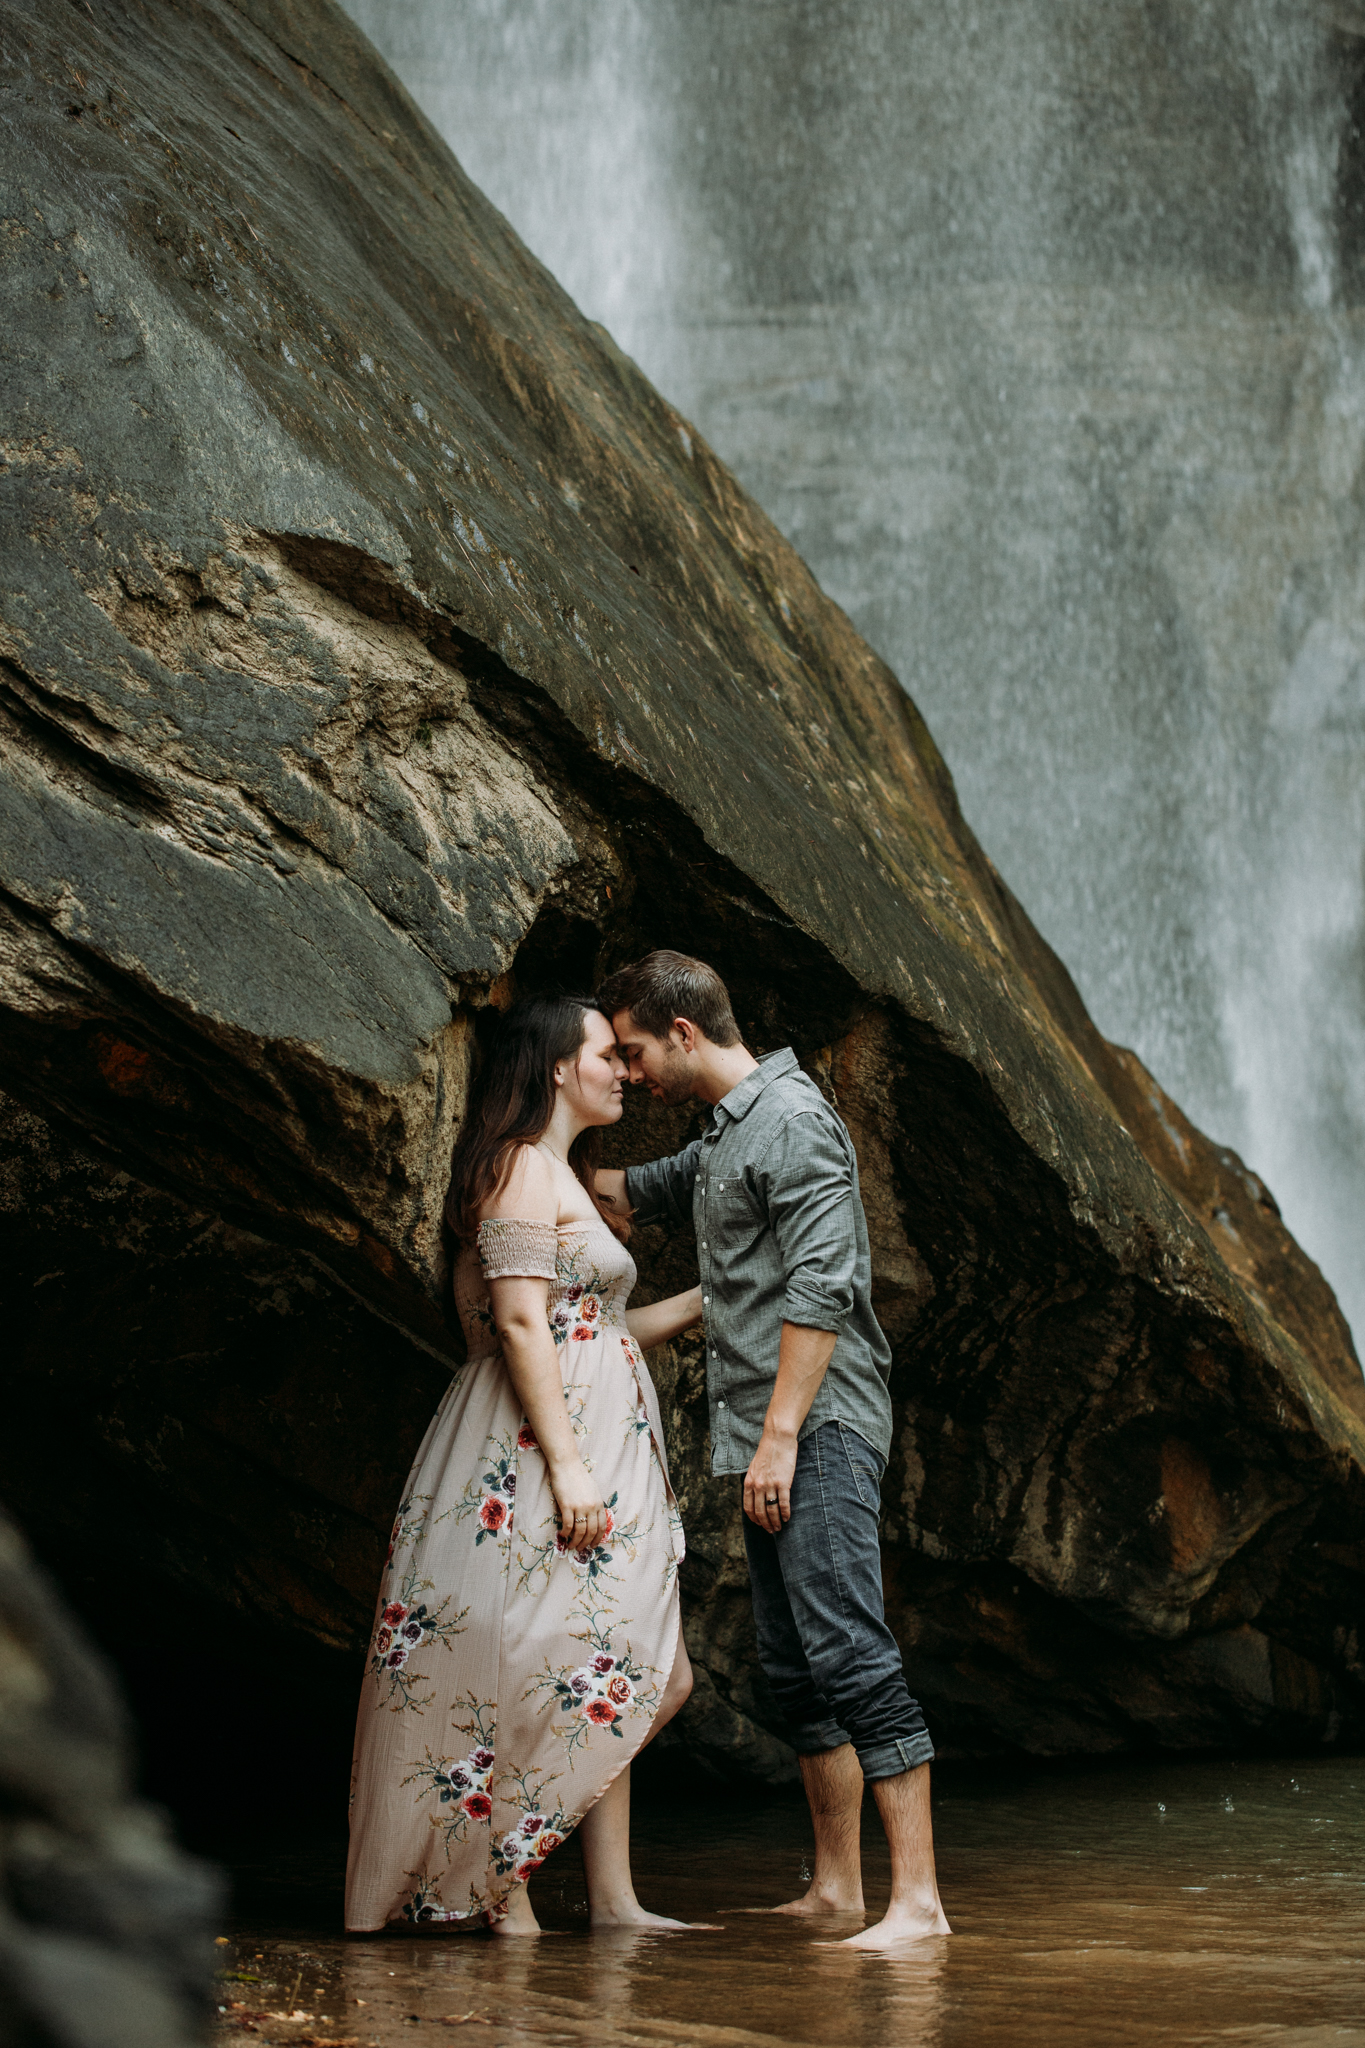 MonicaLeavell-Carolinas-Georgia-Adventure-Engagement-Photographer-49.jpg